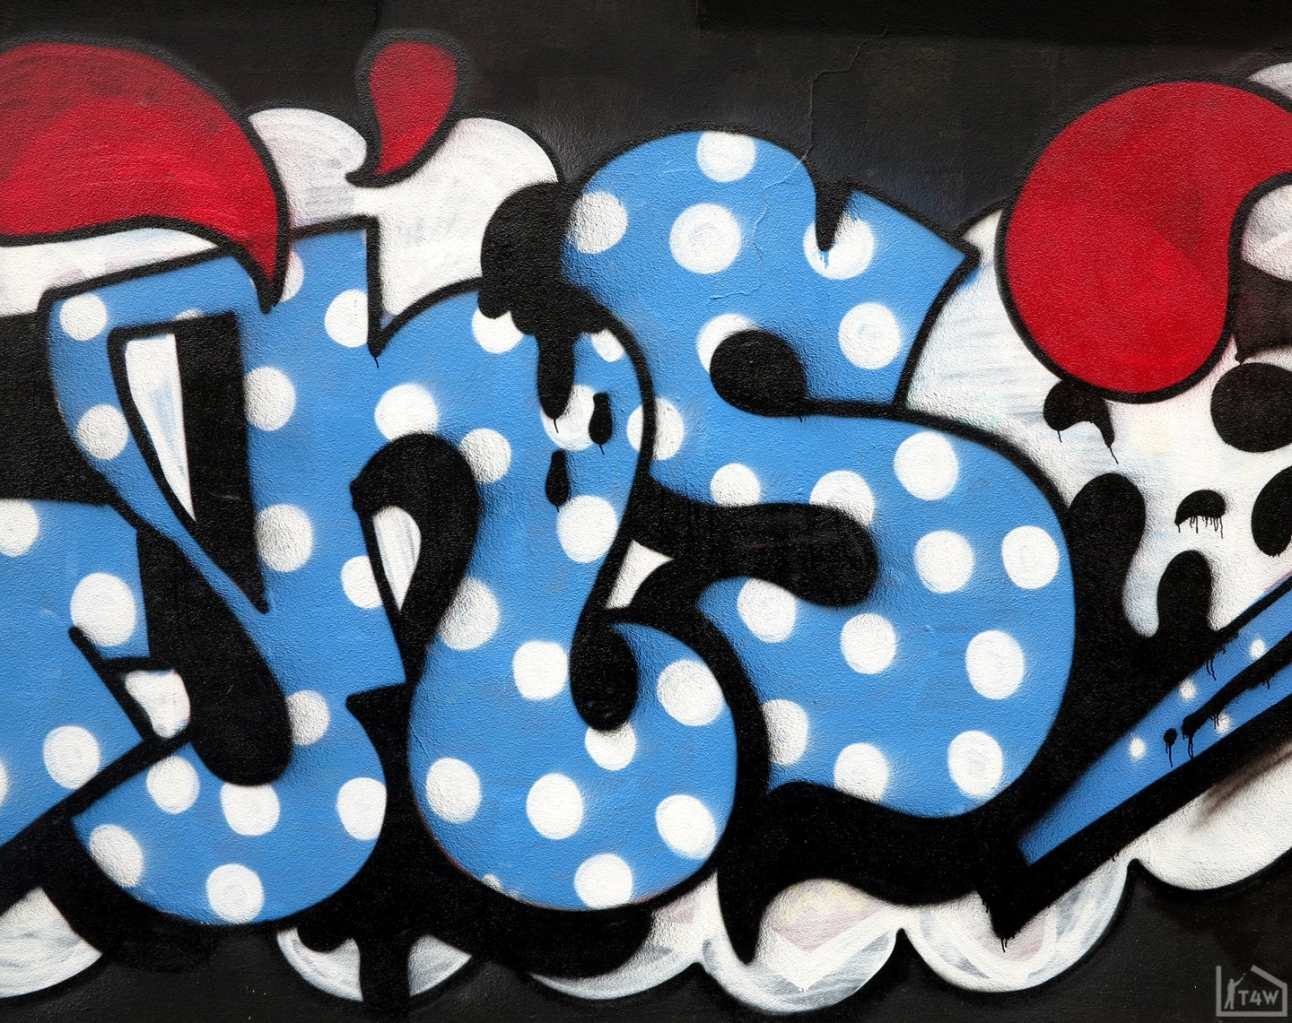 the-fourth-walls-melbourne-graffiti-renks-sens-icee-kawps-fitzroy12